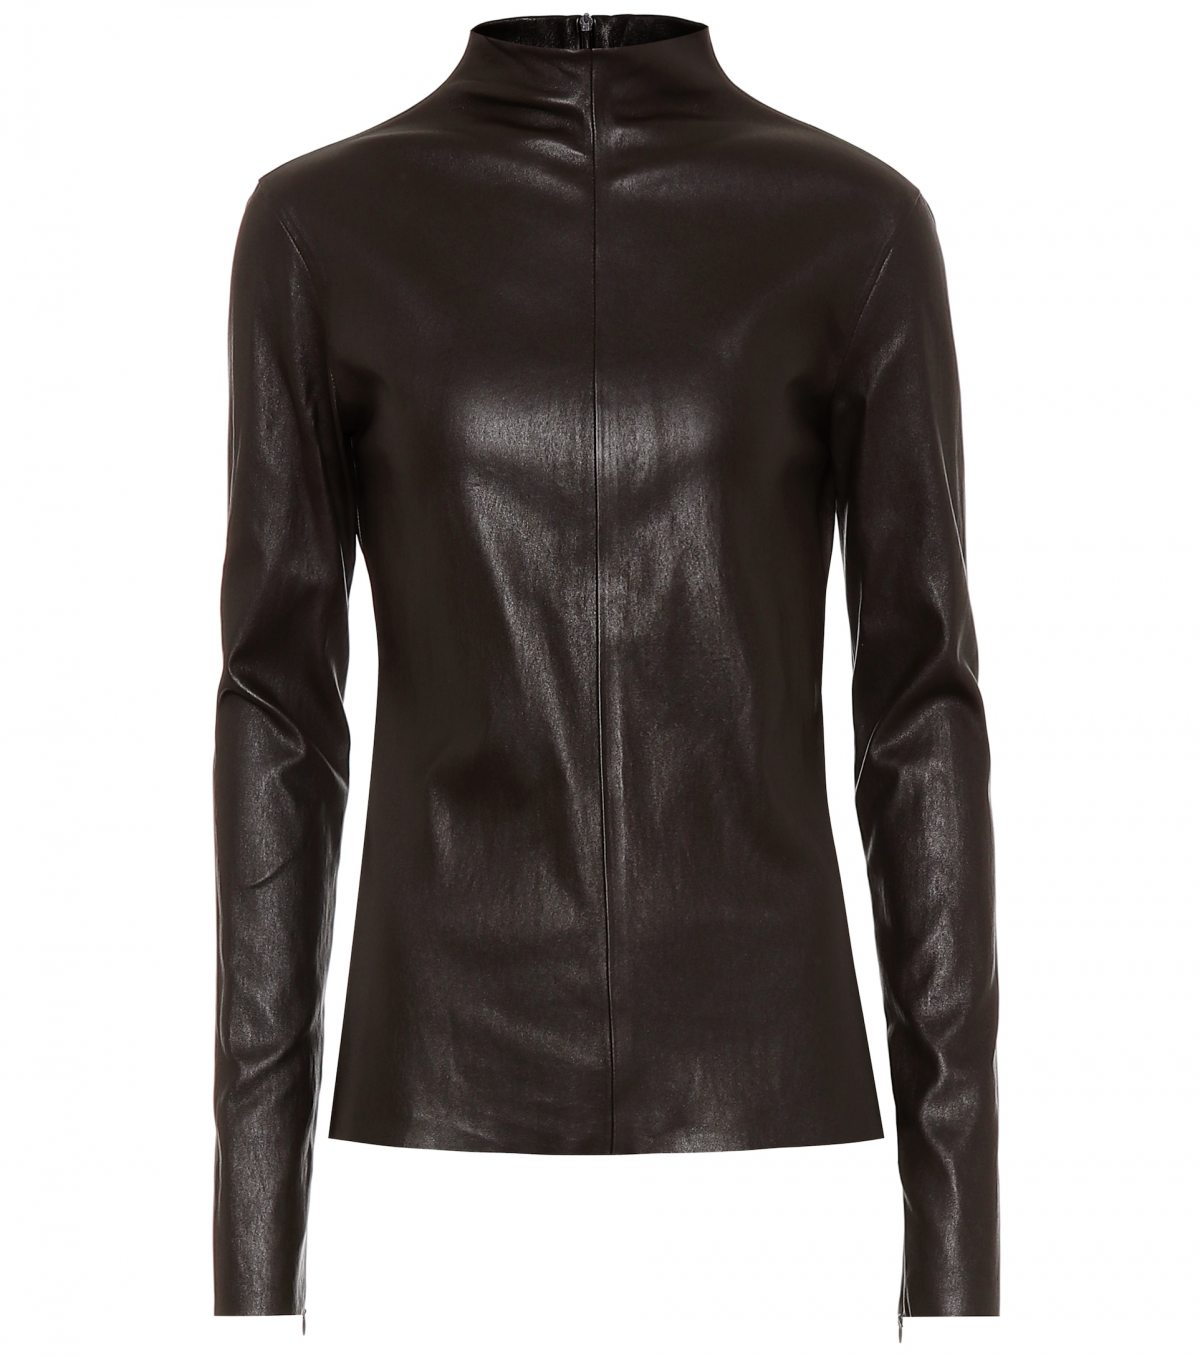 Kim Kardashian wearing a brown button front leather coat with a snakeskin fabric, extra long sleeves, wide collar and flap pockets